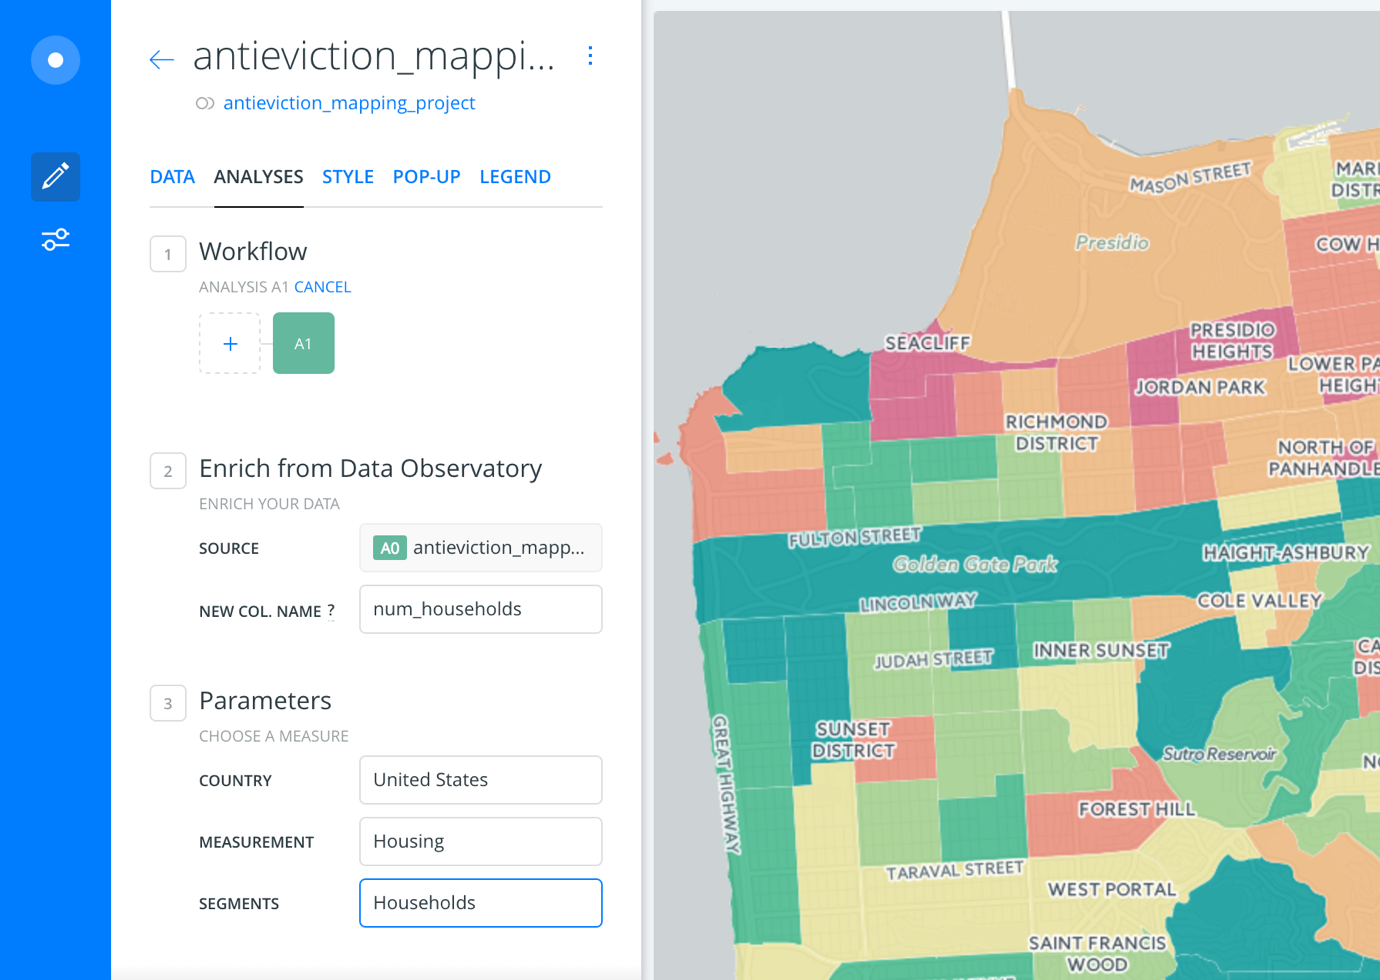 Anti-Eviction Mapping